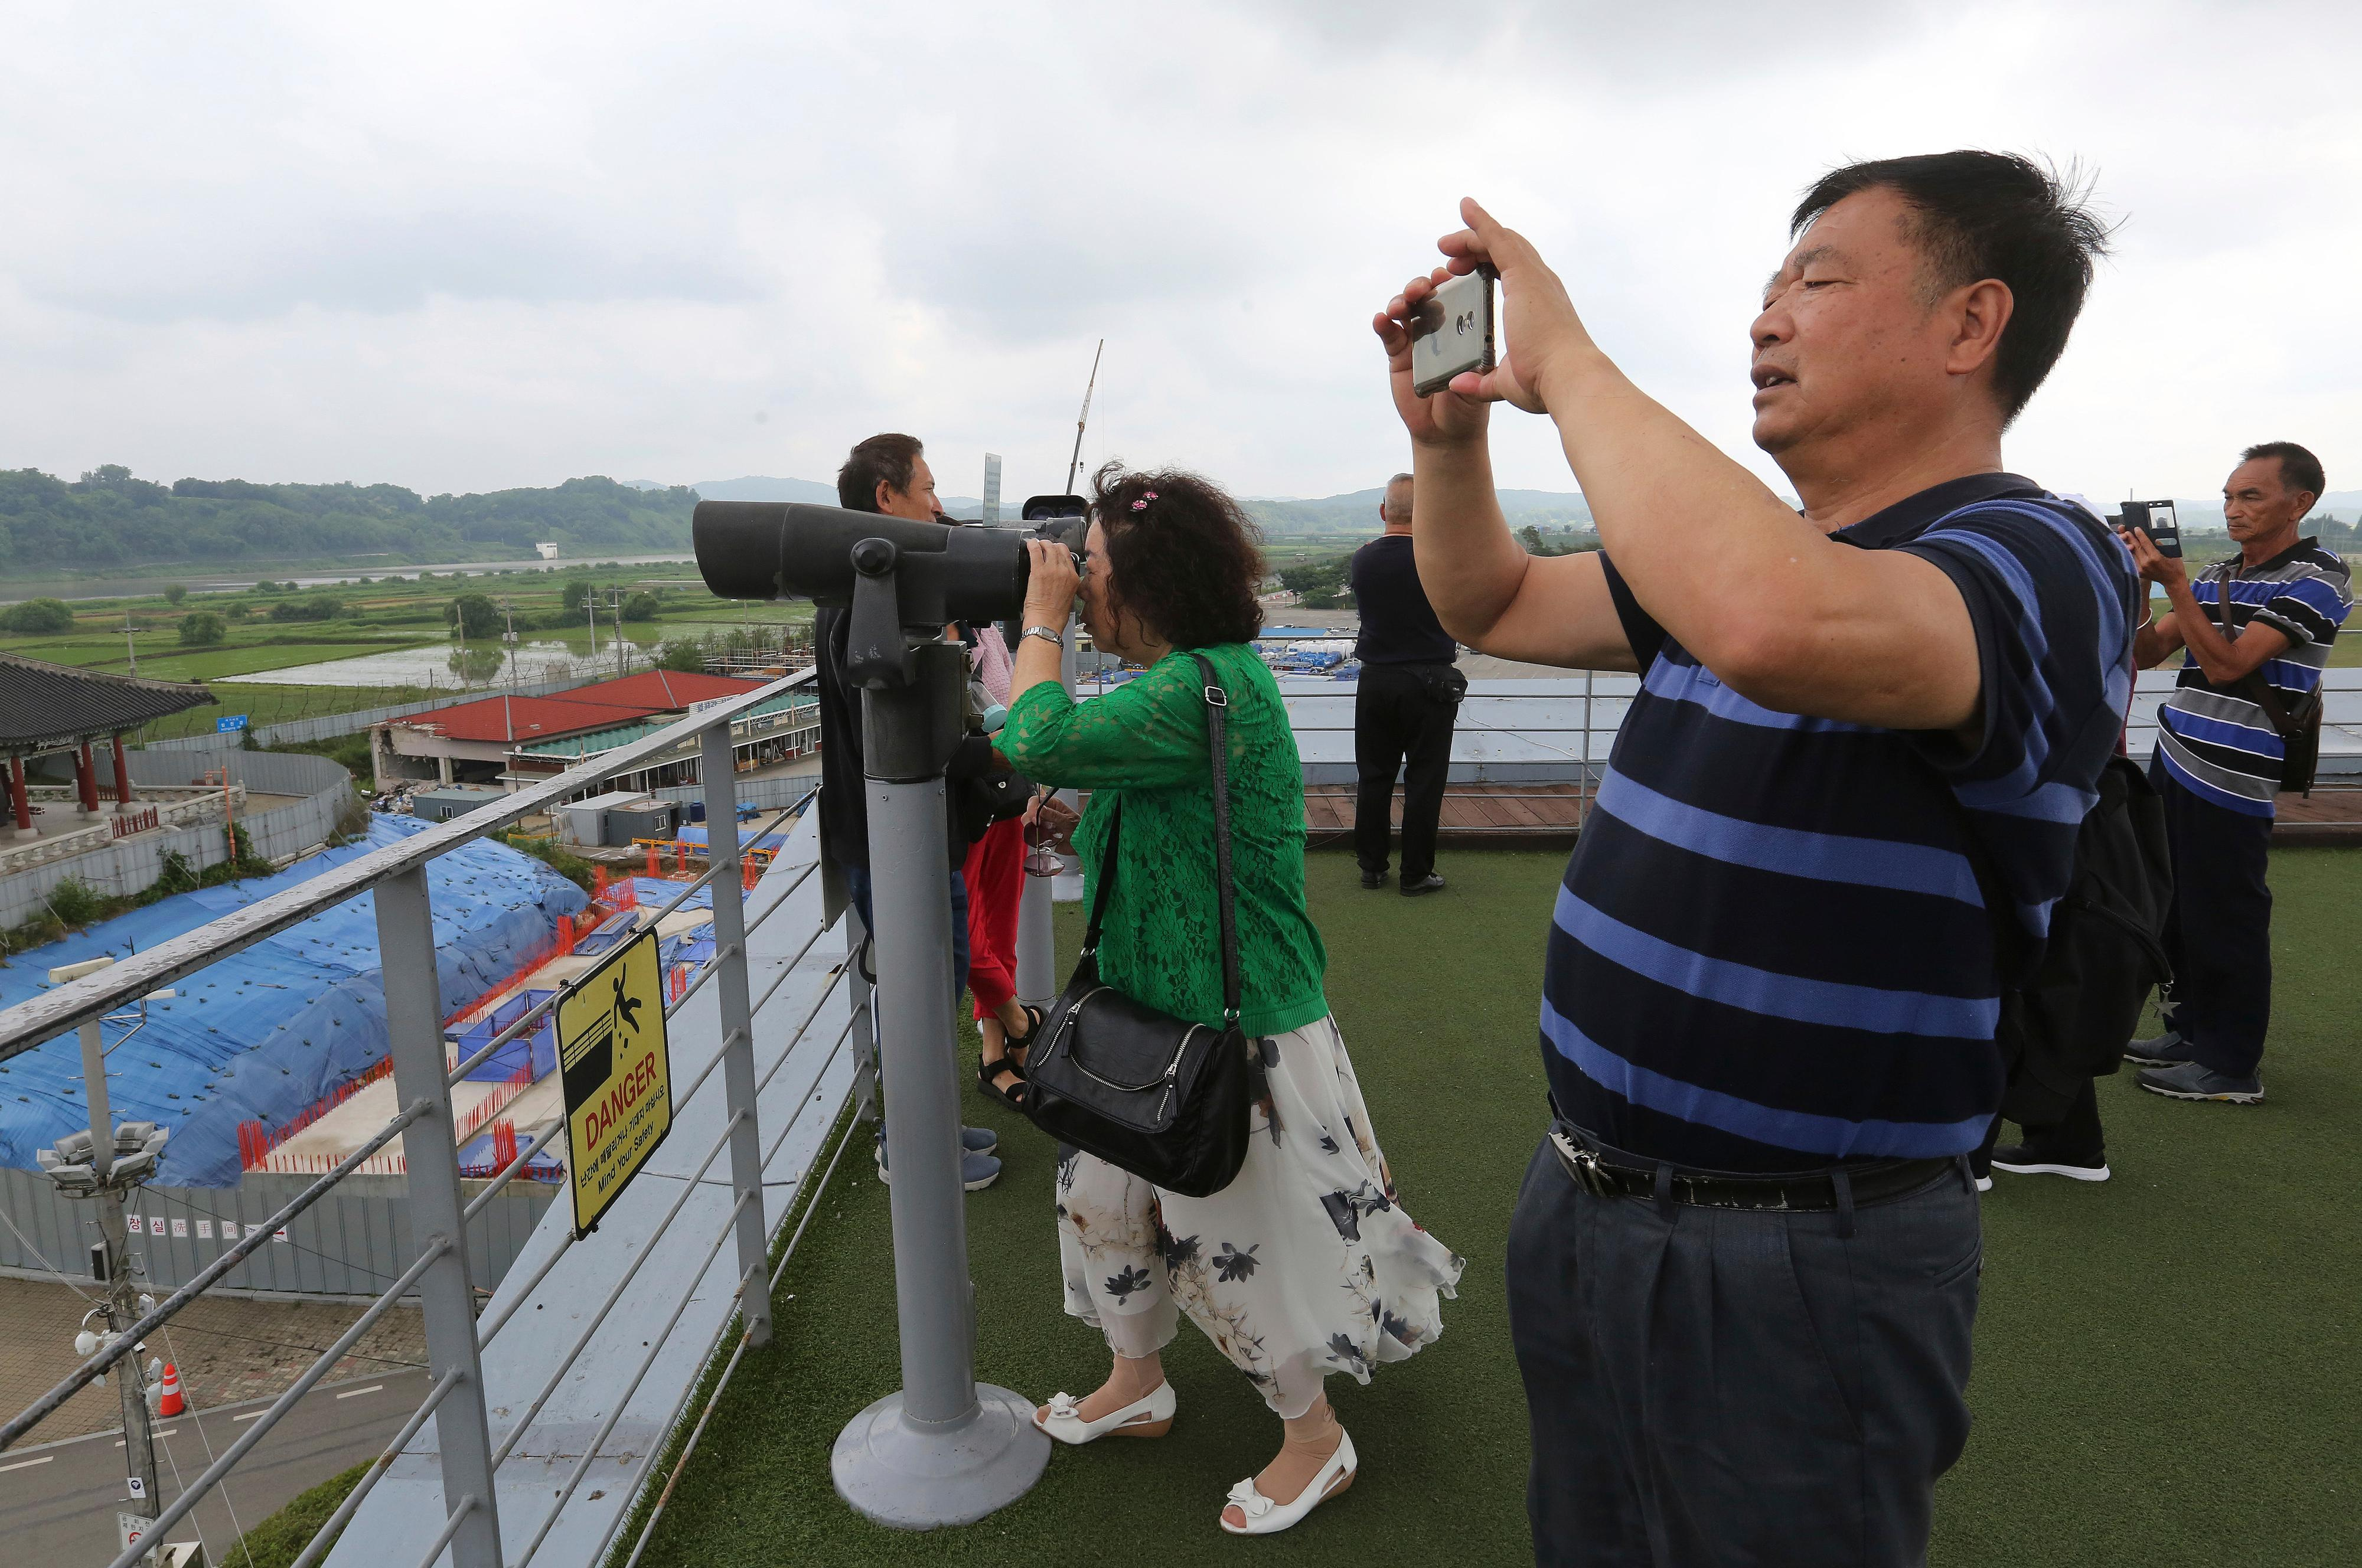 Chinese visitors look toward the North's side at the Imjingak Pavilion, near the demilitarized zone of Panmunjom, in Paju, South Korea, Thursday, June 20, 2019. (AP Photo/Ahn Young-joon)